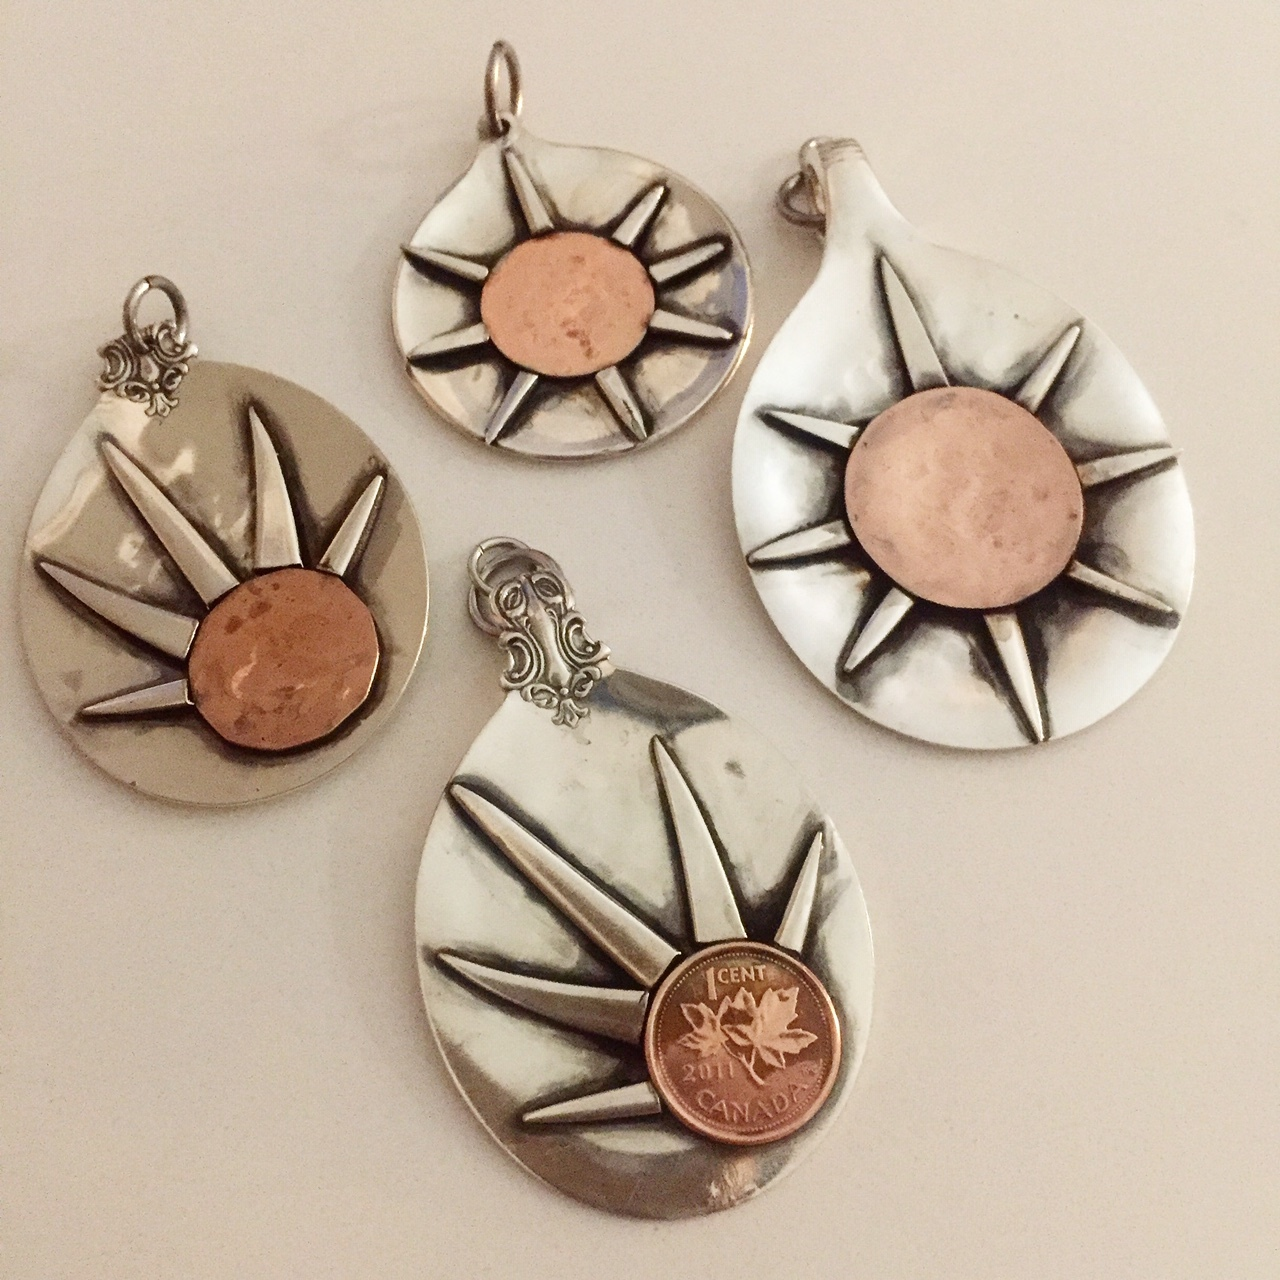 Sun Ray Pendants